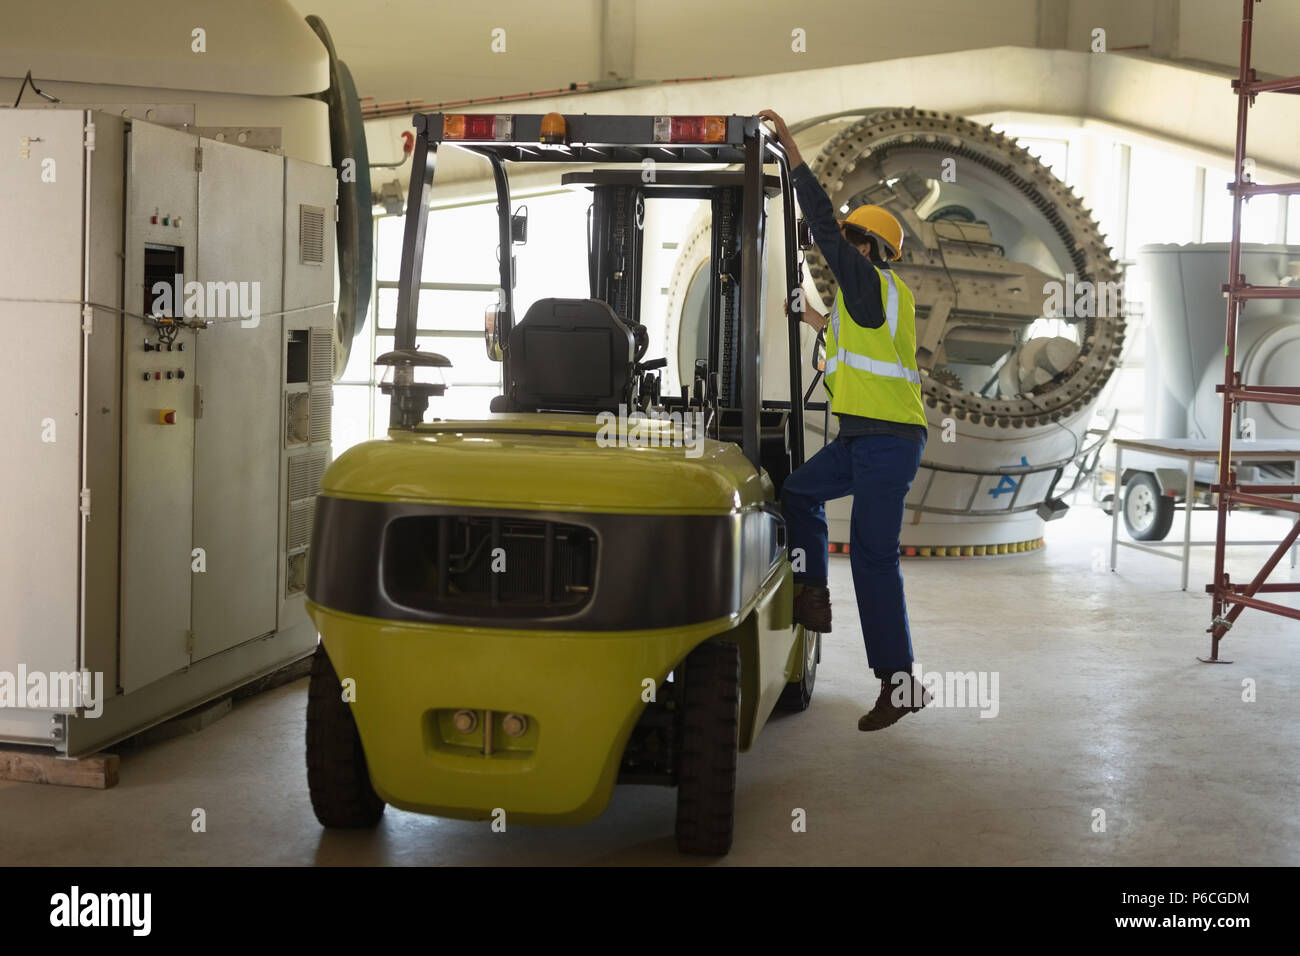 Male worker getting in forklift - Stock Image